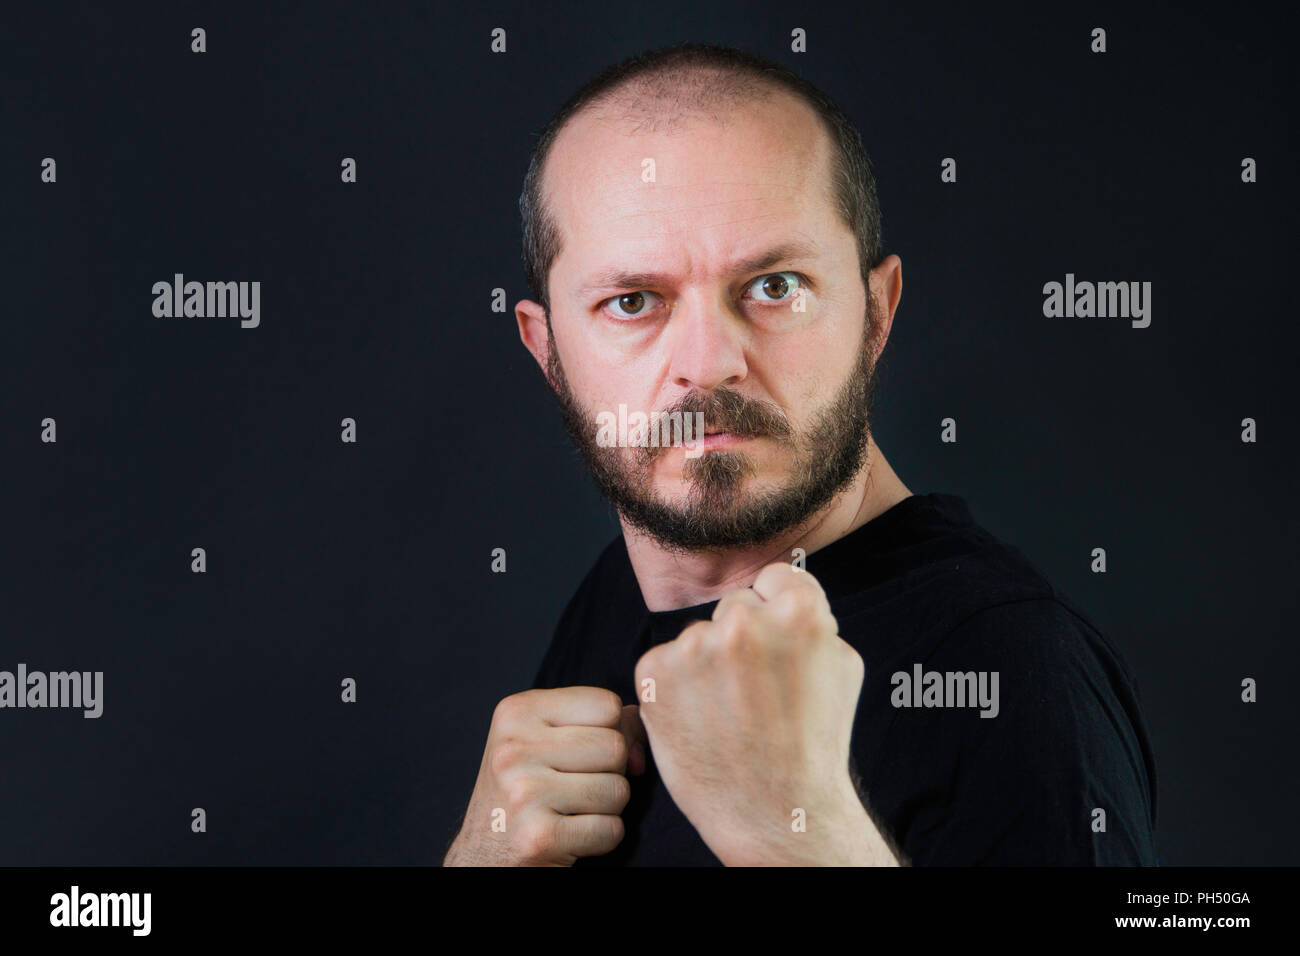 Serious aggressive man with beard and mustaches on black background in low key, holding fists and threatening, ready for fight - Stock Image